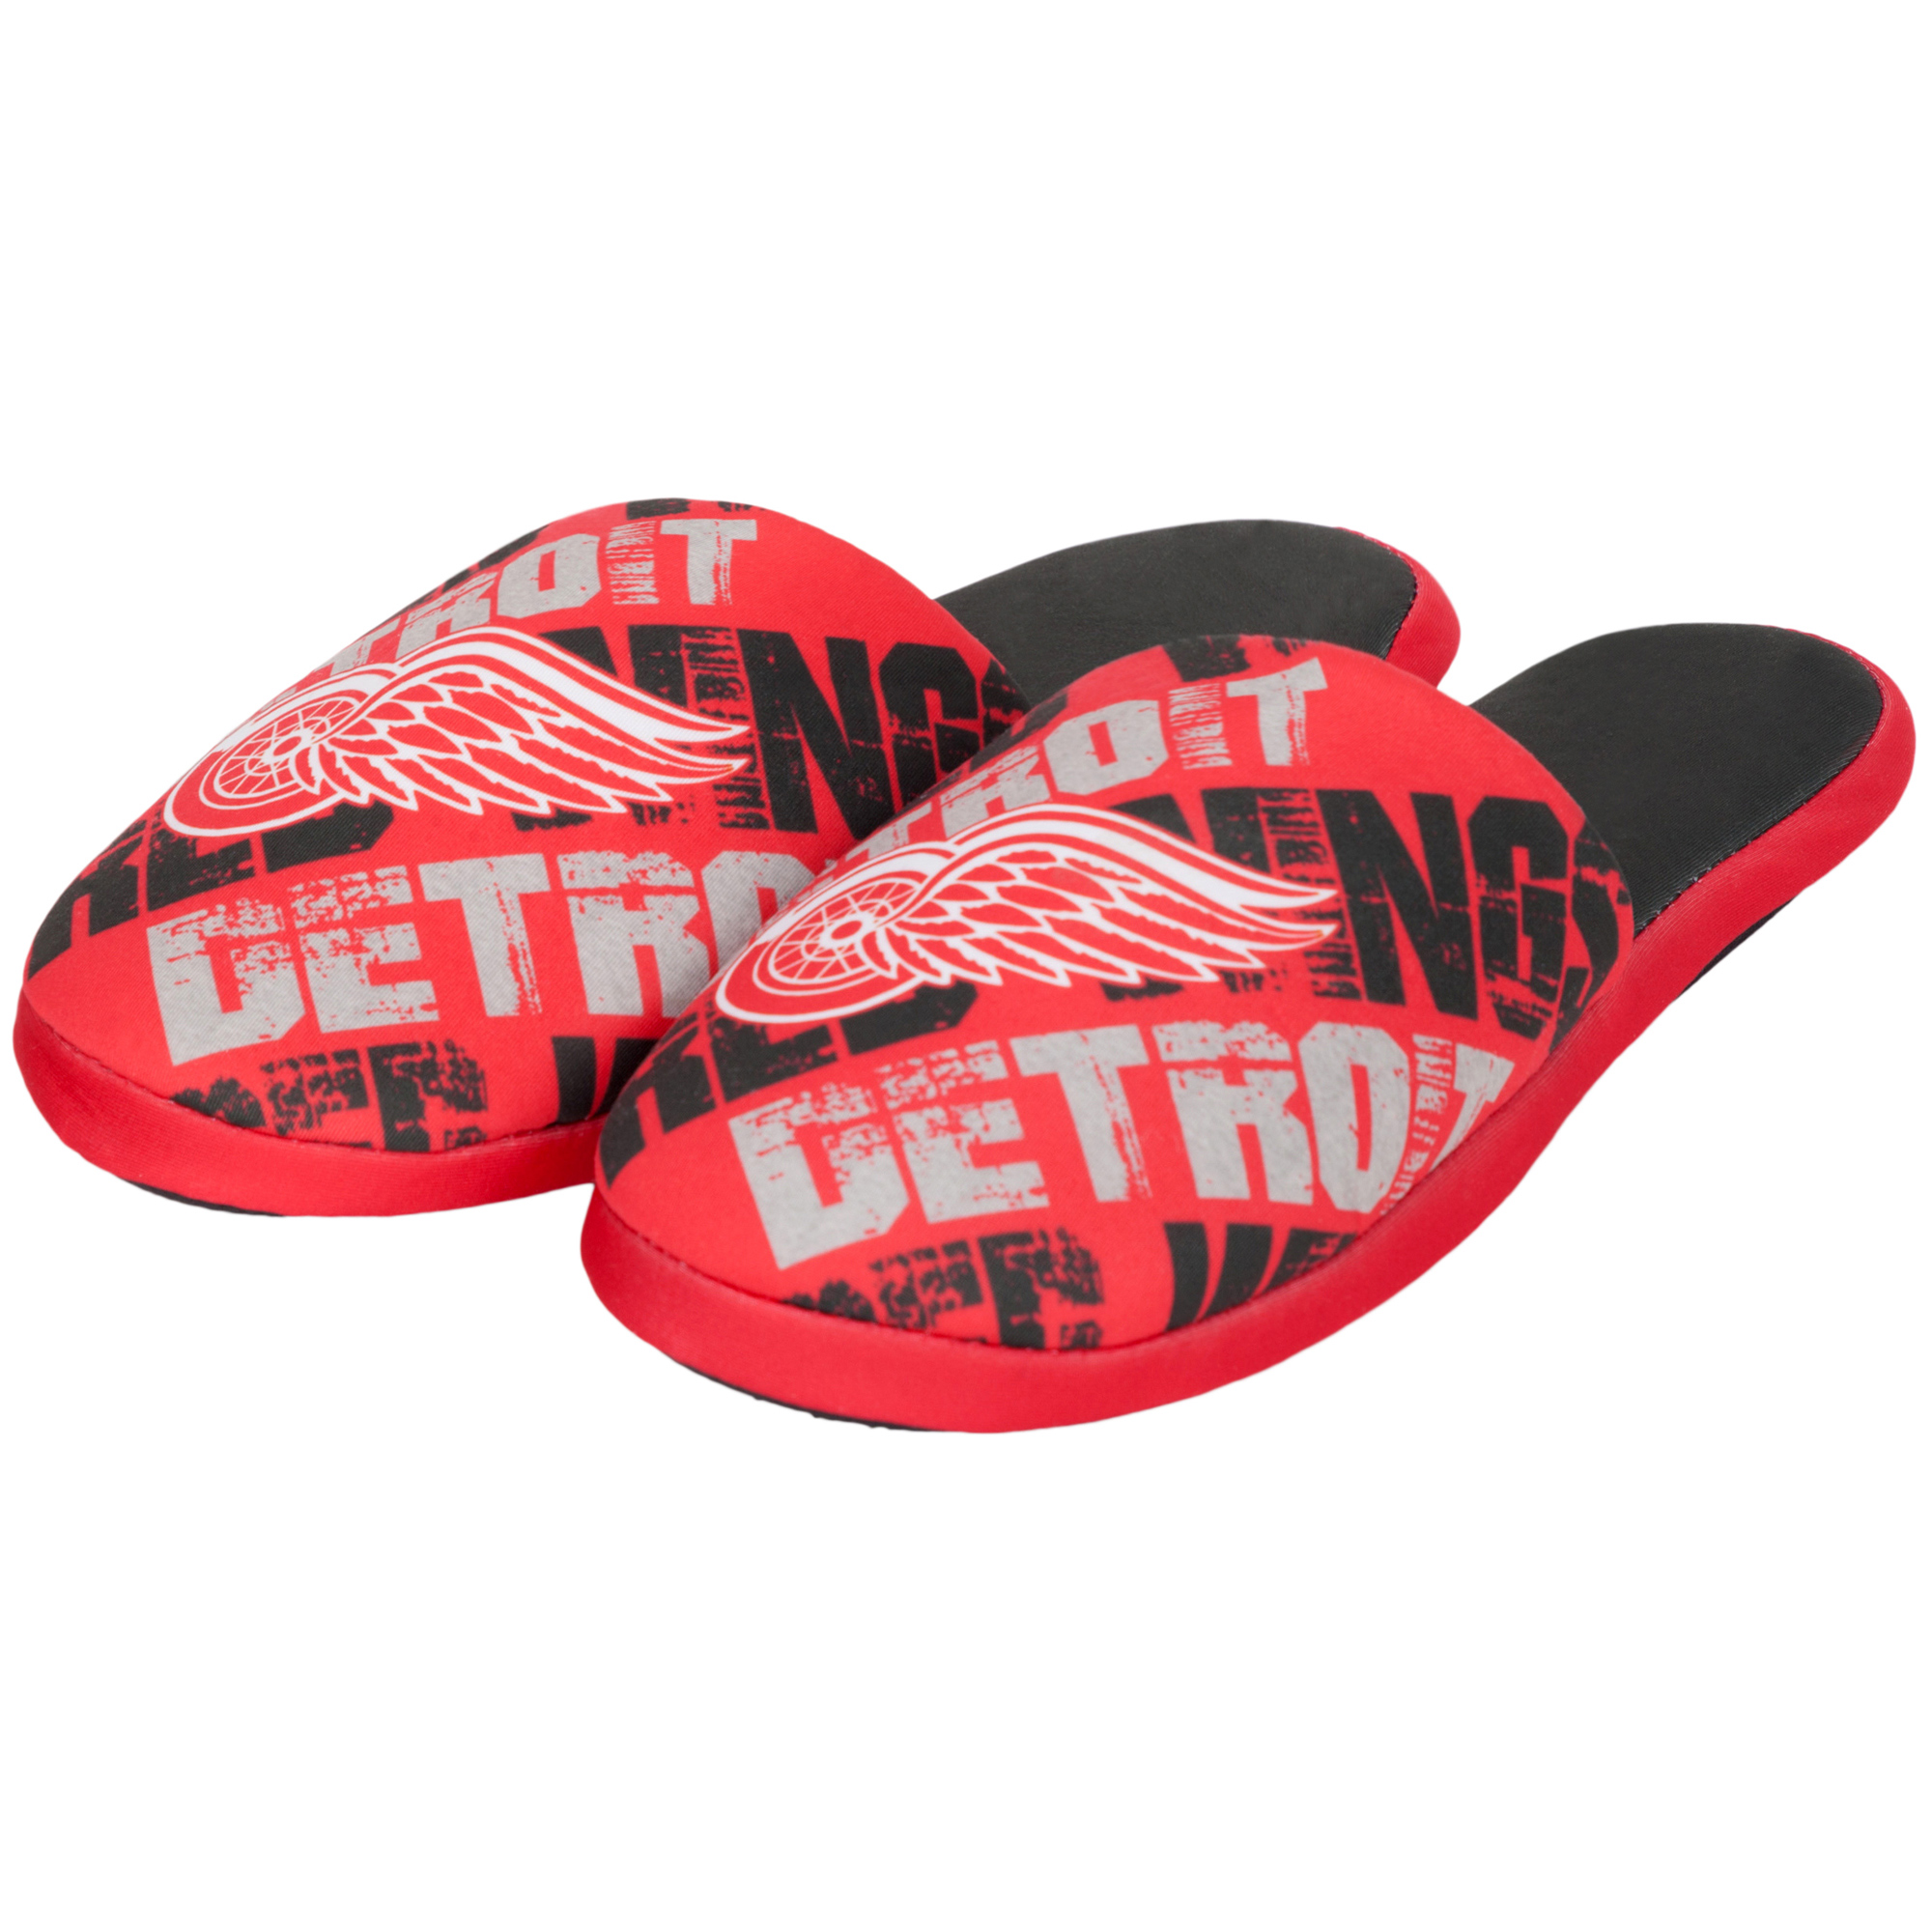 Detroit Red Wings Digital Print Slippers - Red